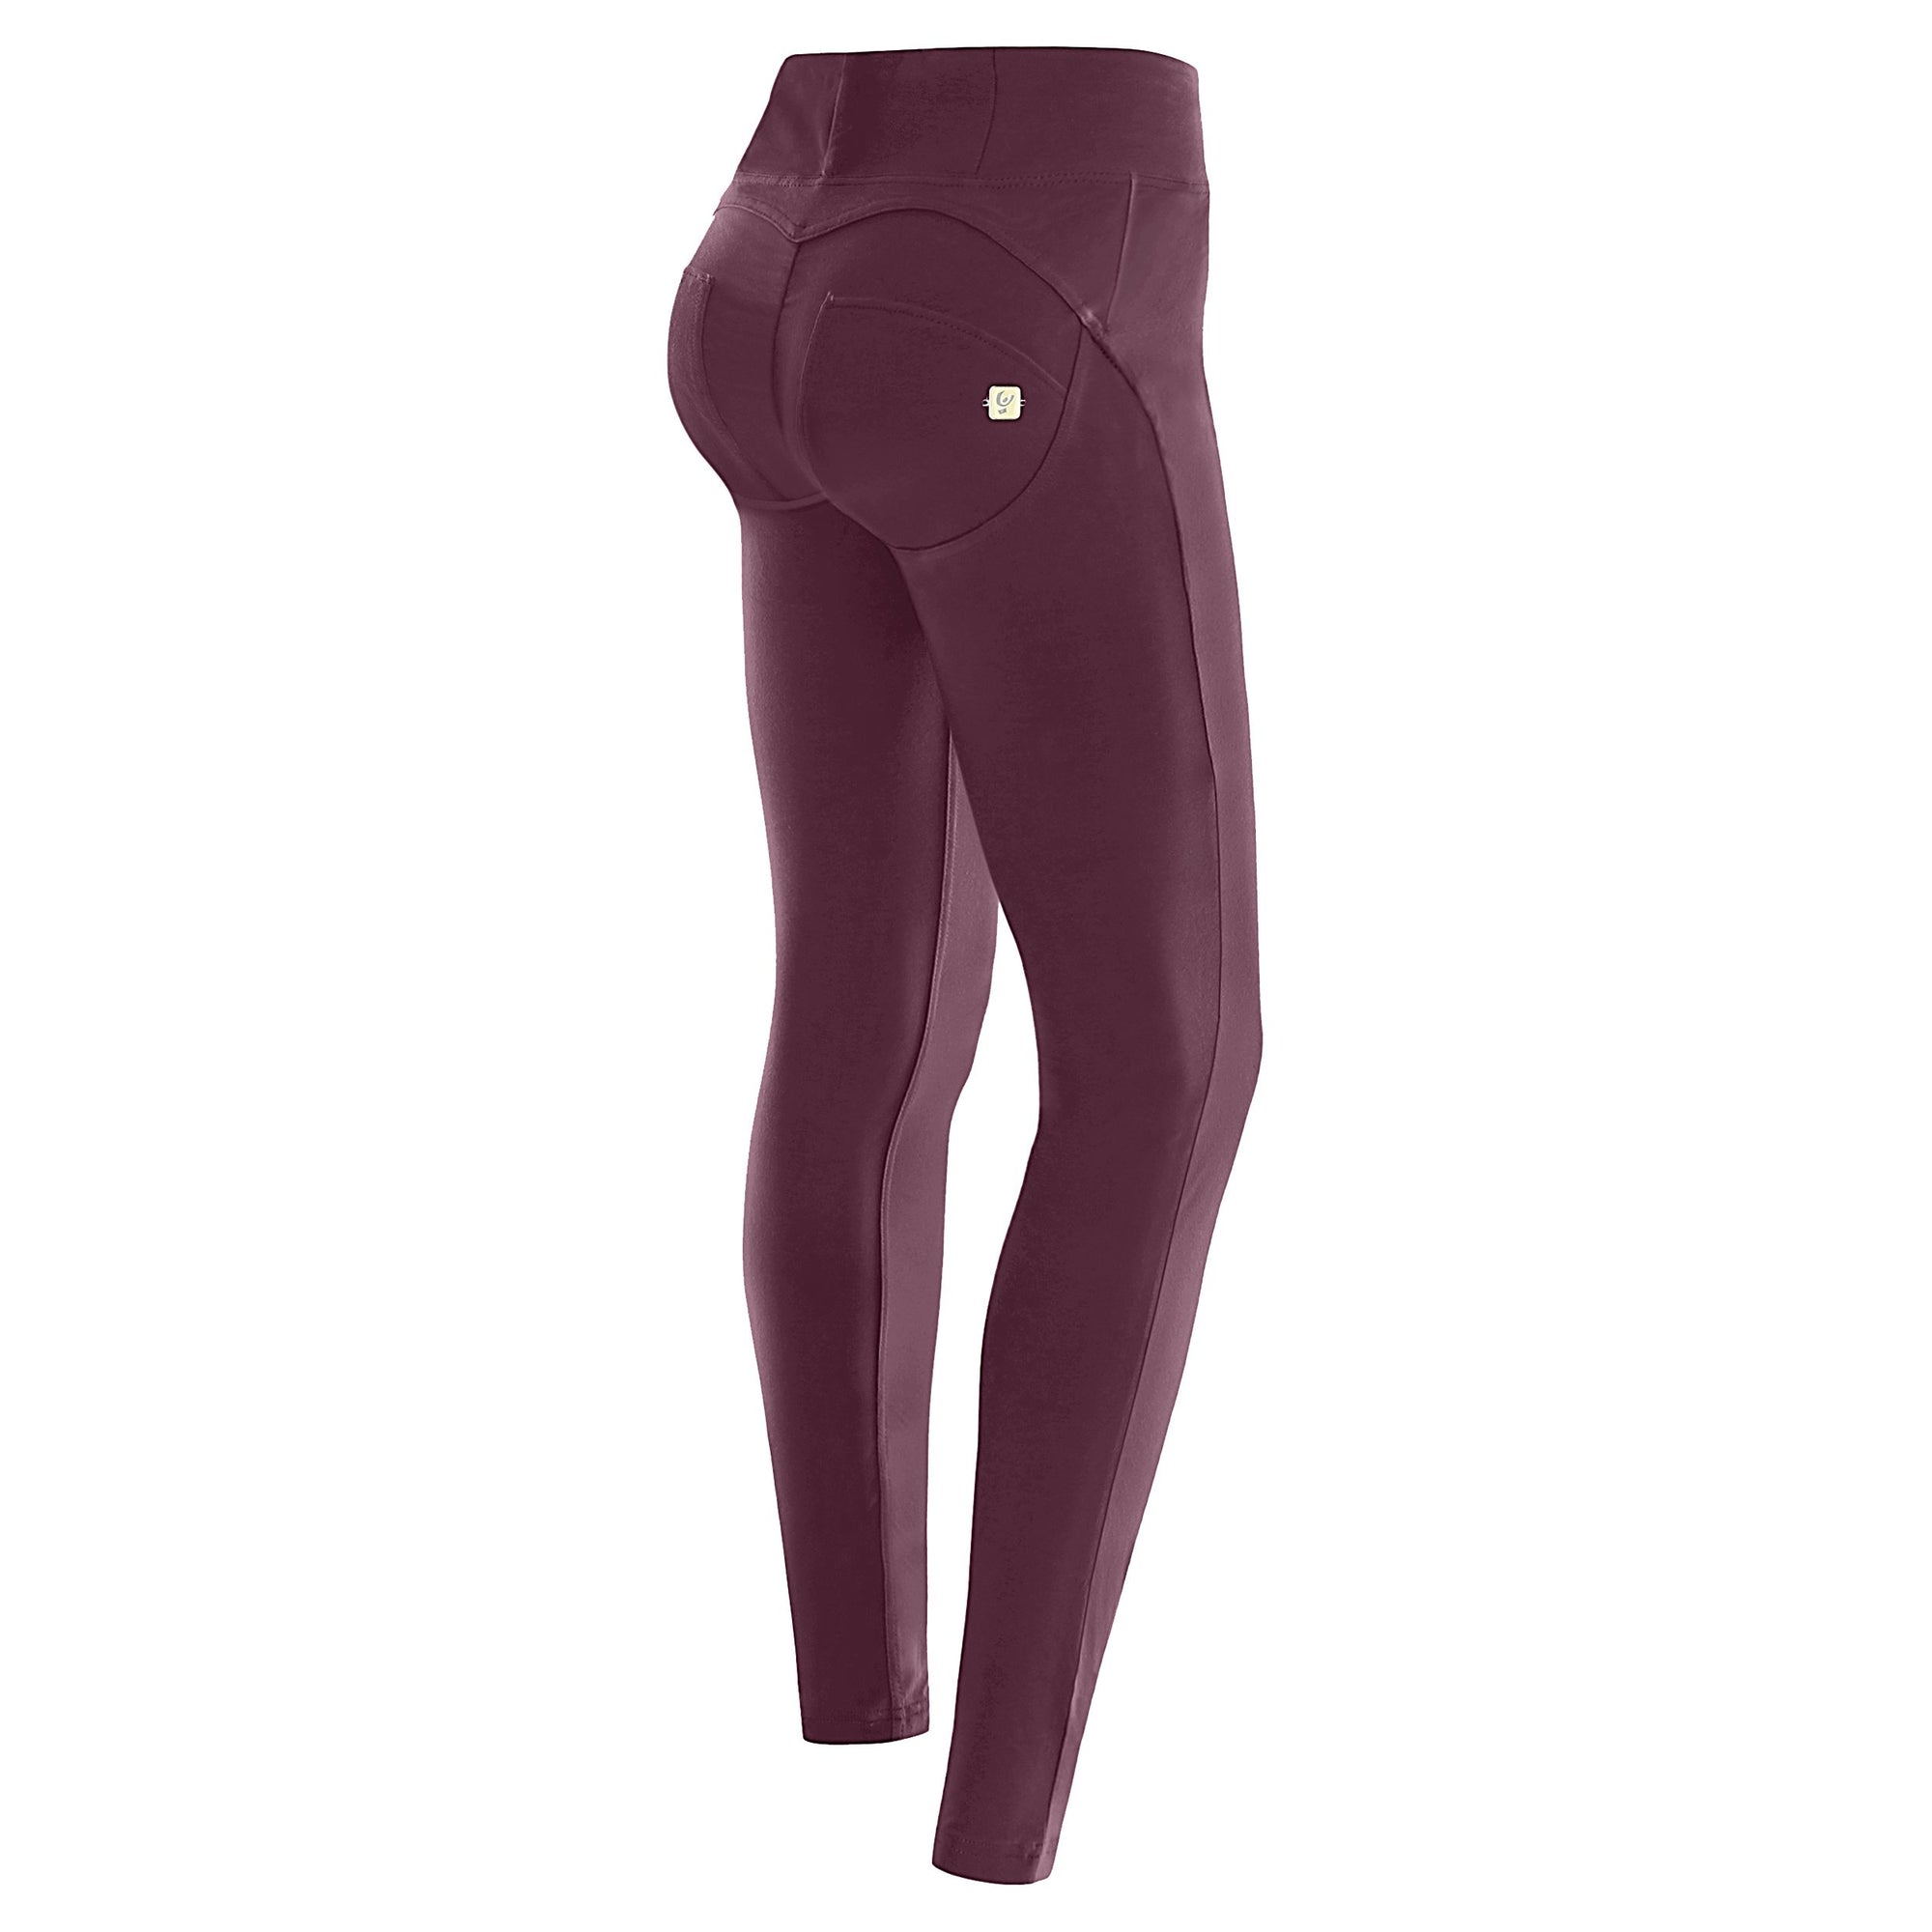 BURGUNDY D.I.W.O.® PRO BEAUTY EFFECT HIGH WAIST SELF TONE ZIP